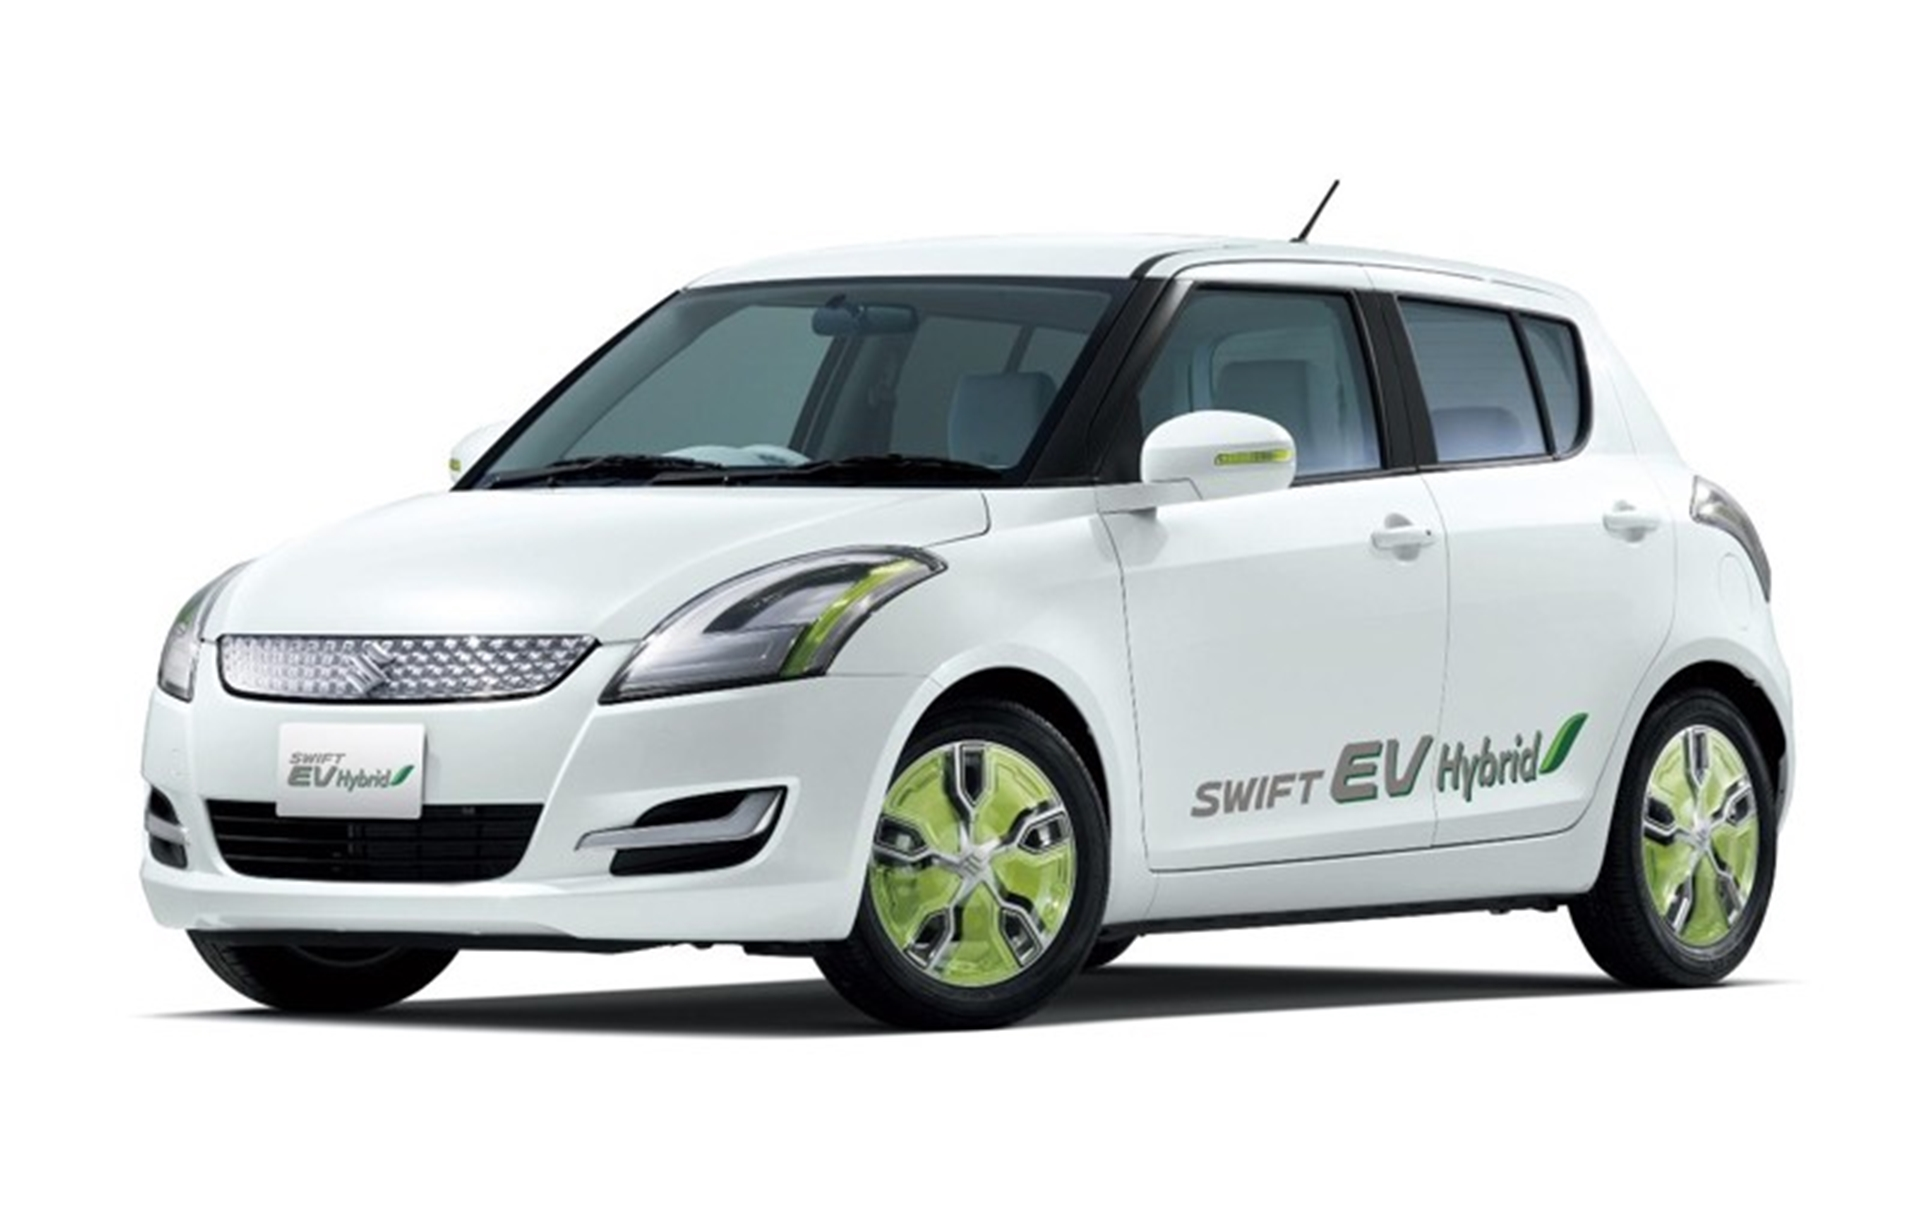 Suzuki EV Hybrid Electric Vehicle